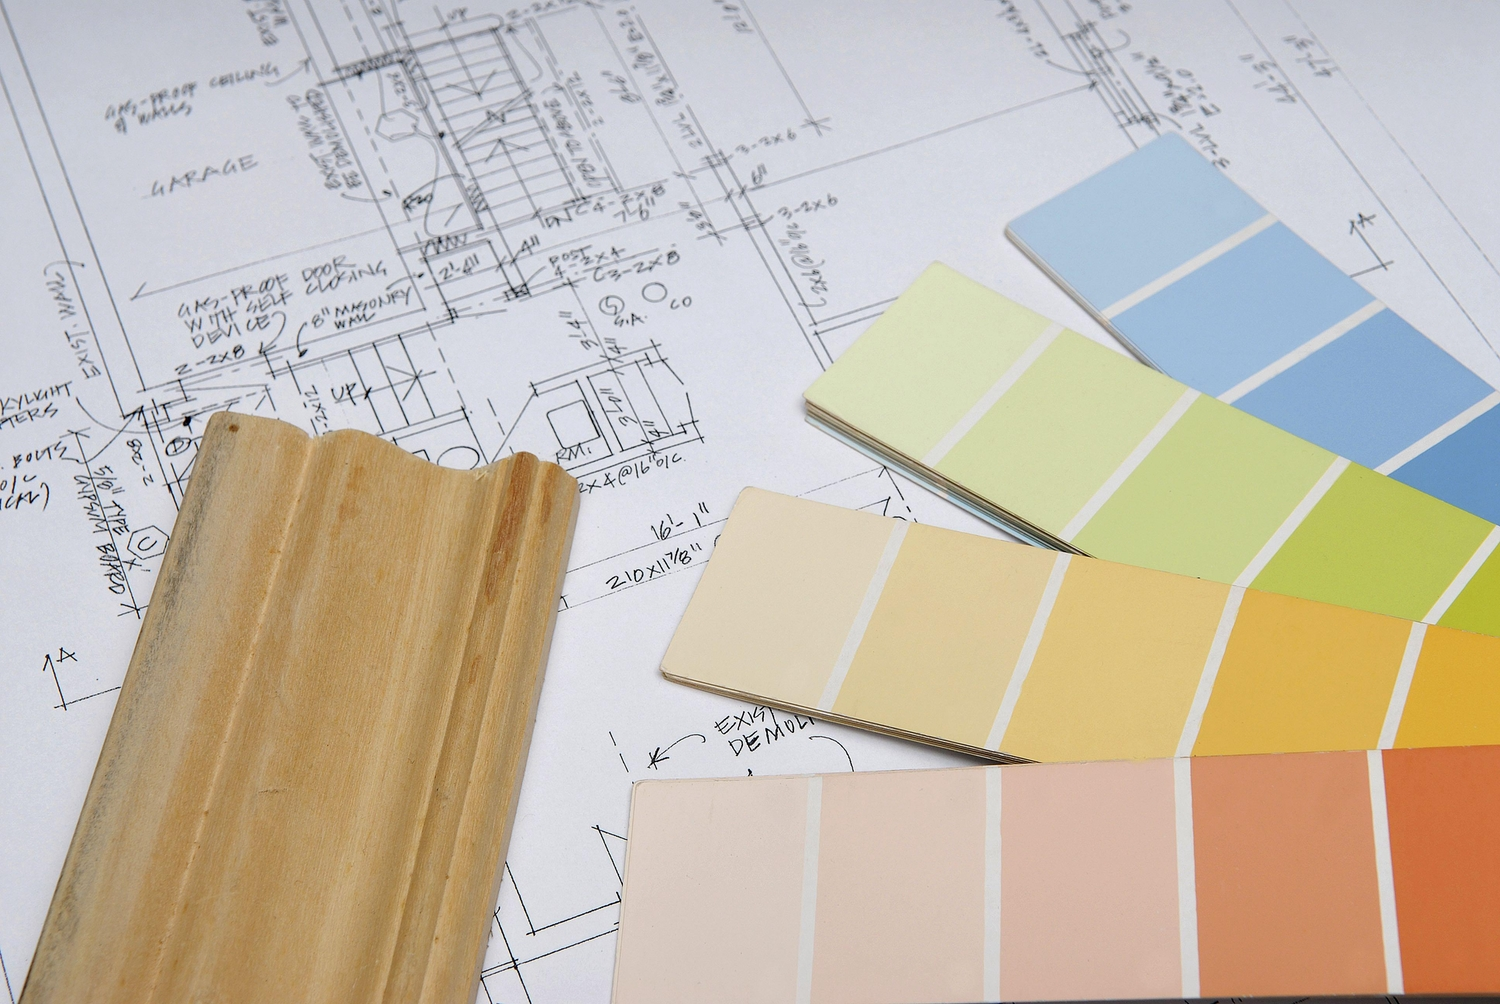 Home renovations with plans paint and wood sample